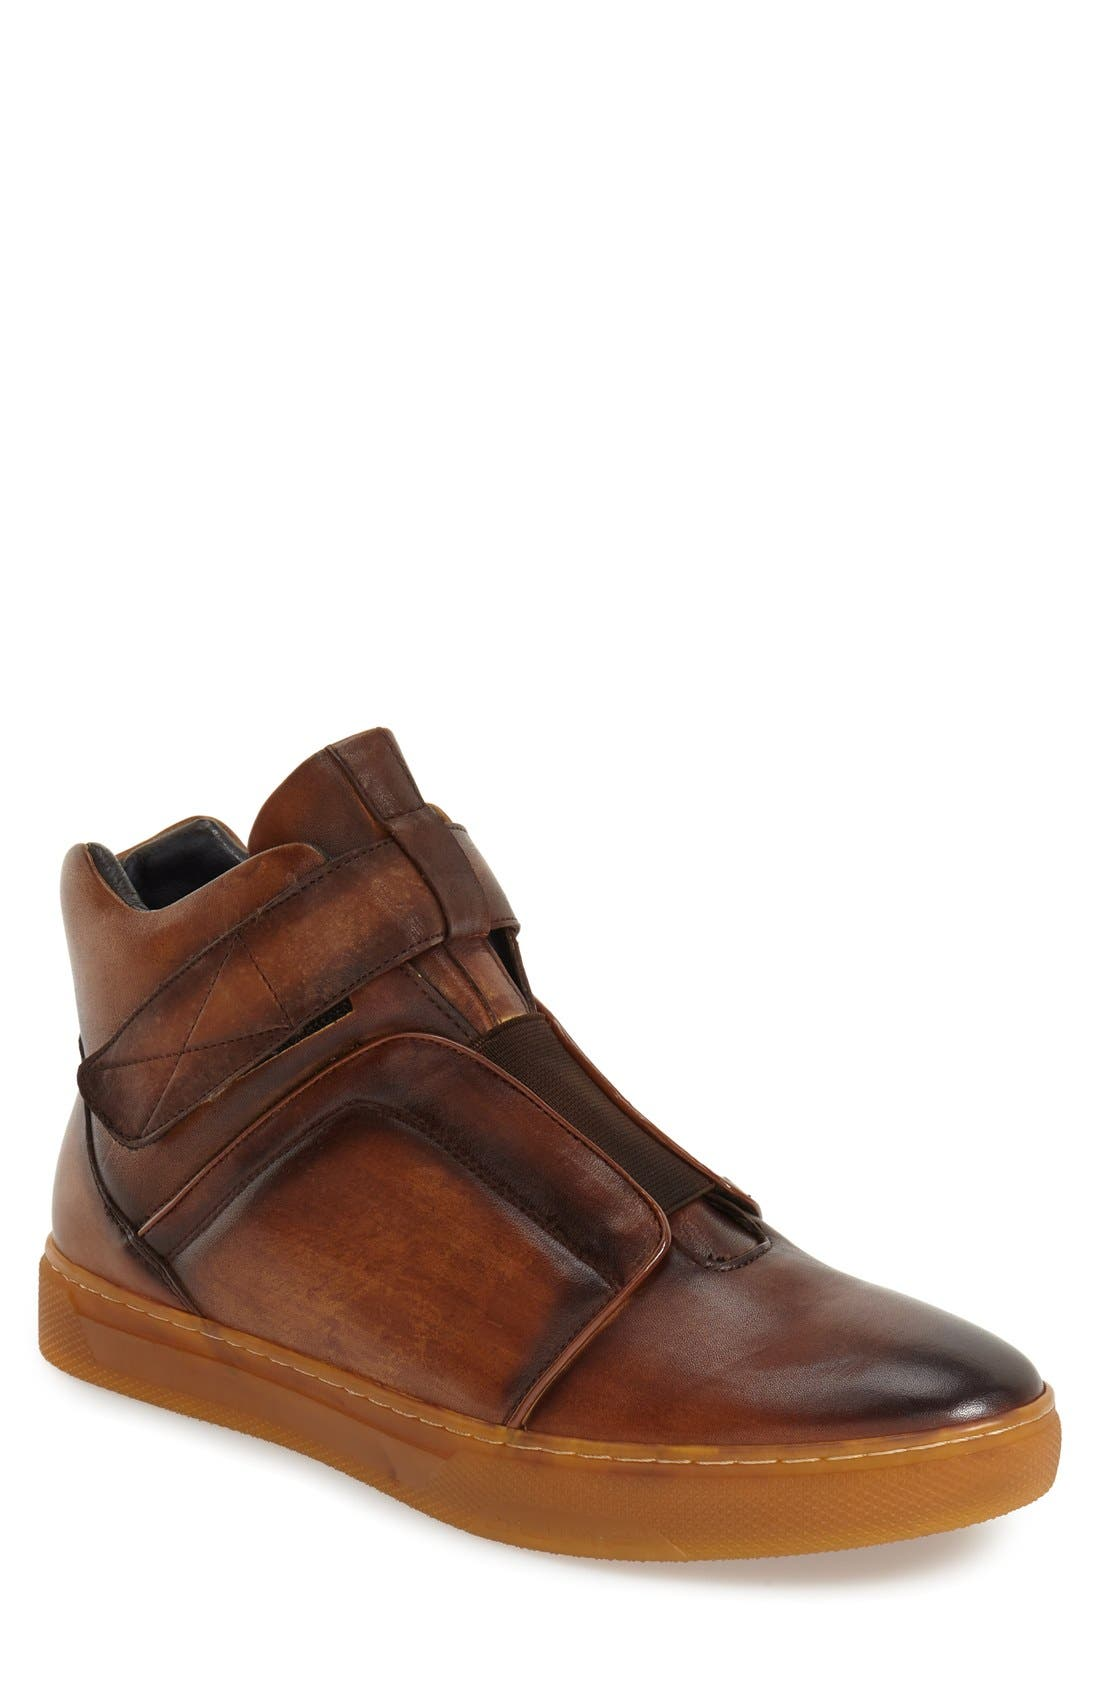 Scully High Top Sneaker,                         Main,                         color, TAN LEATHER